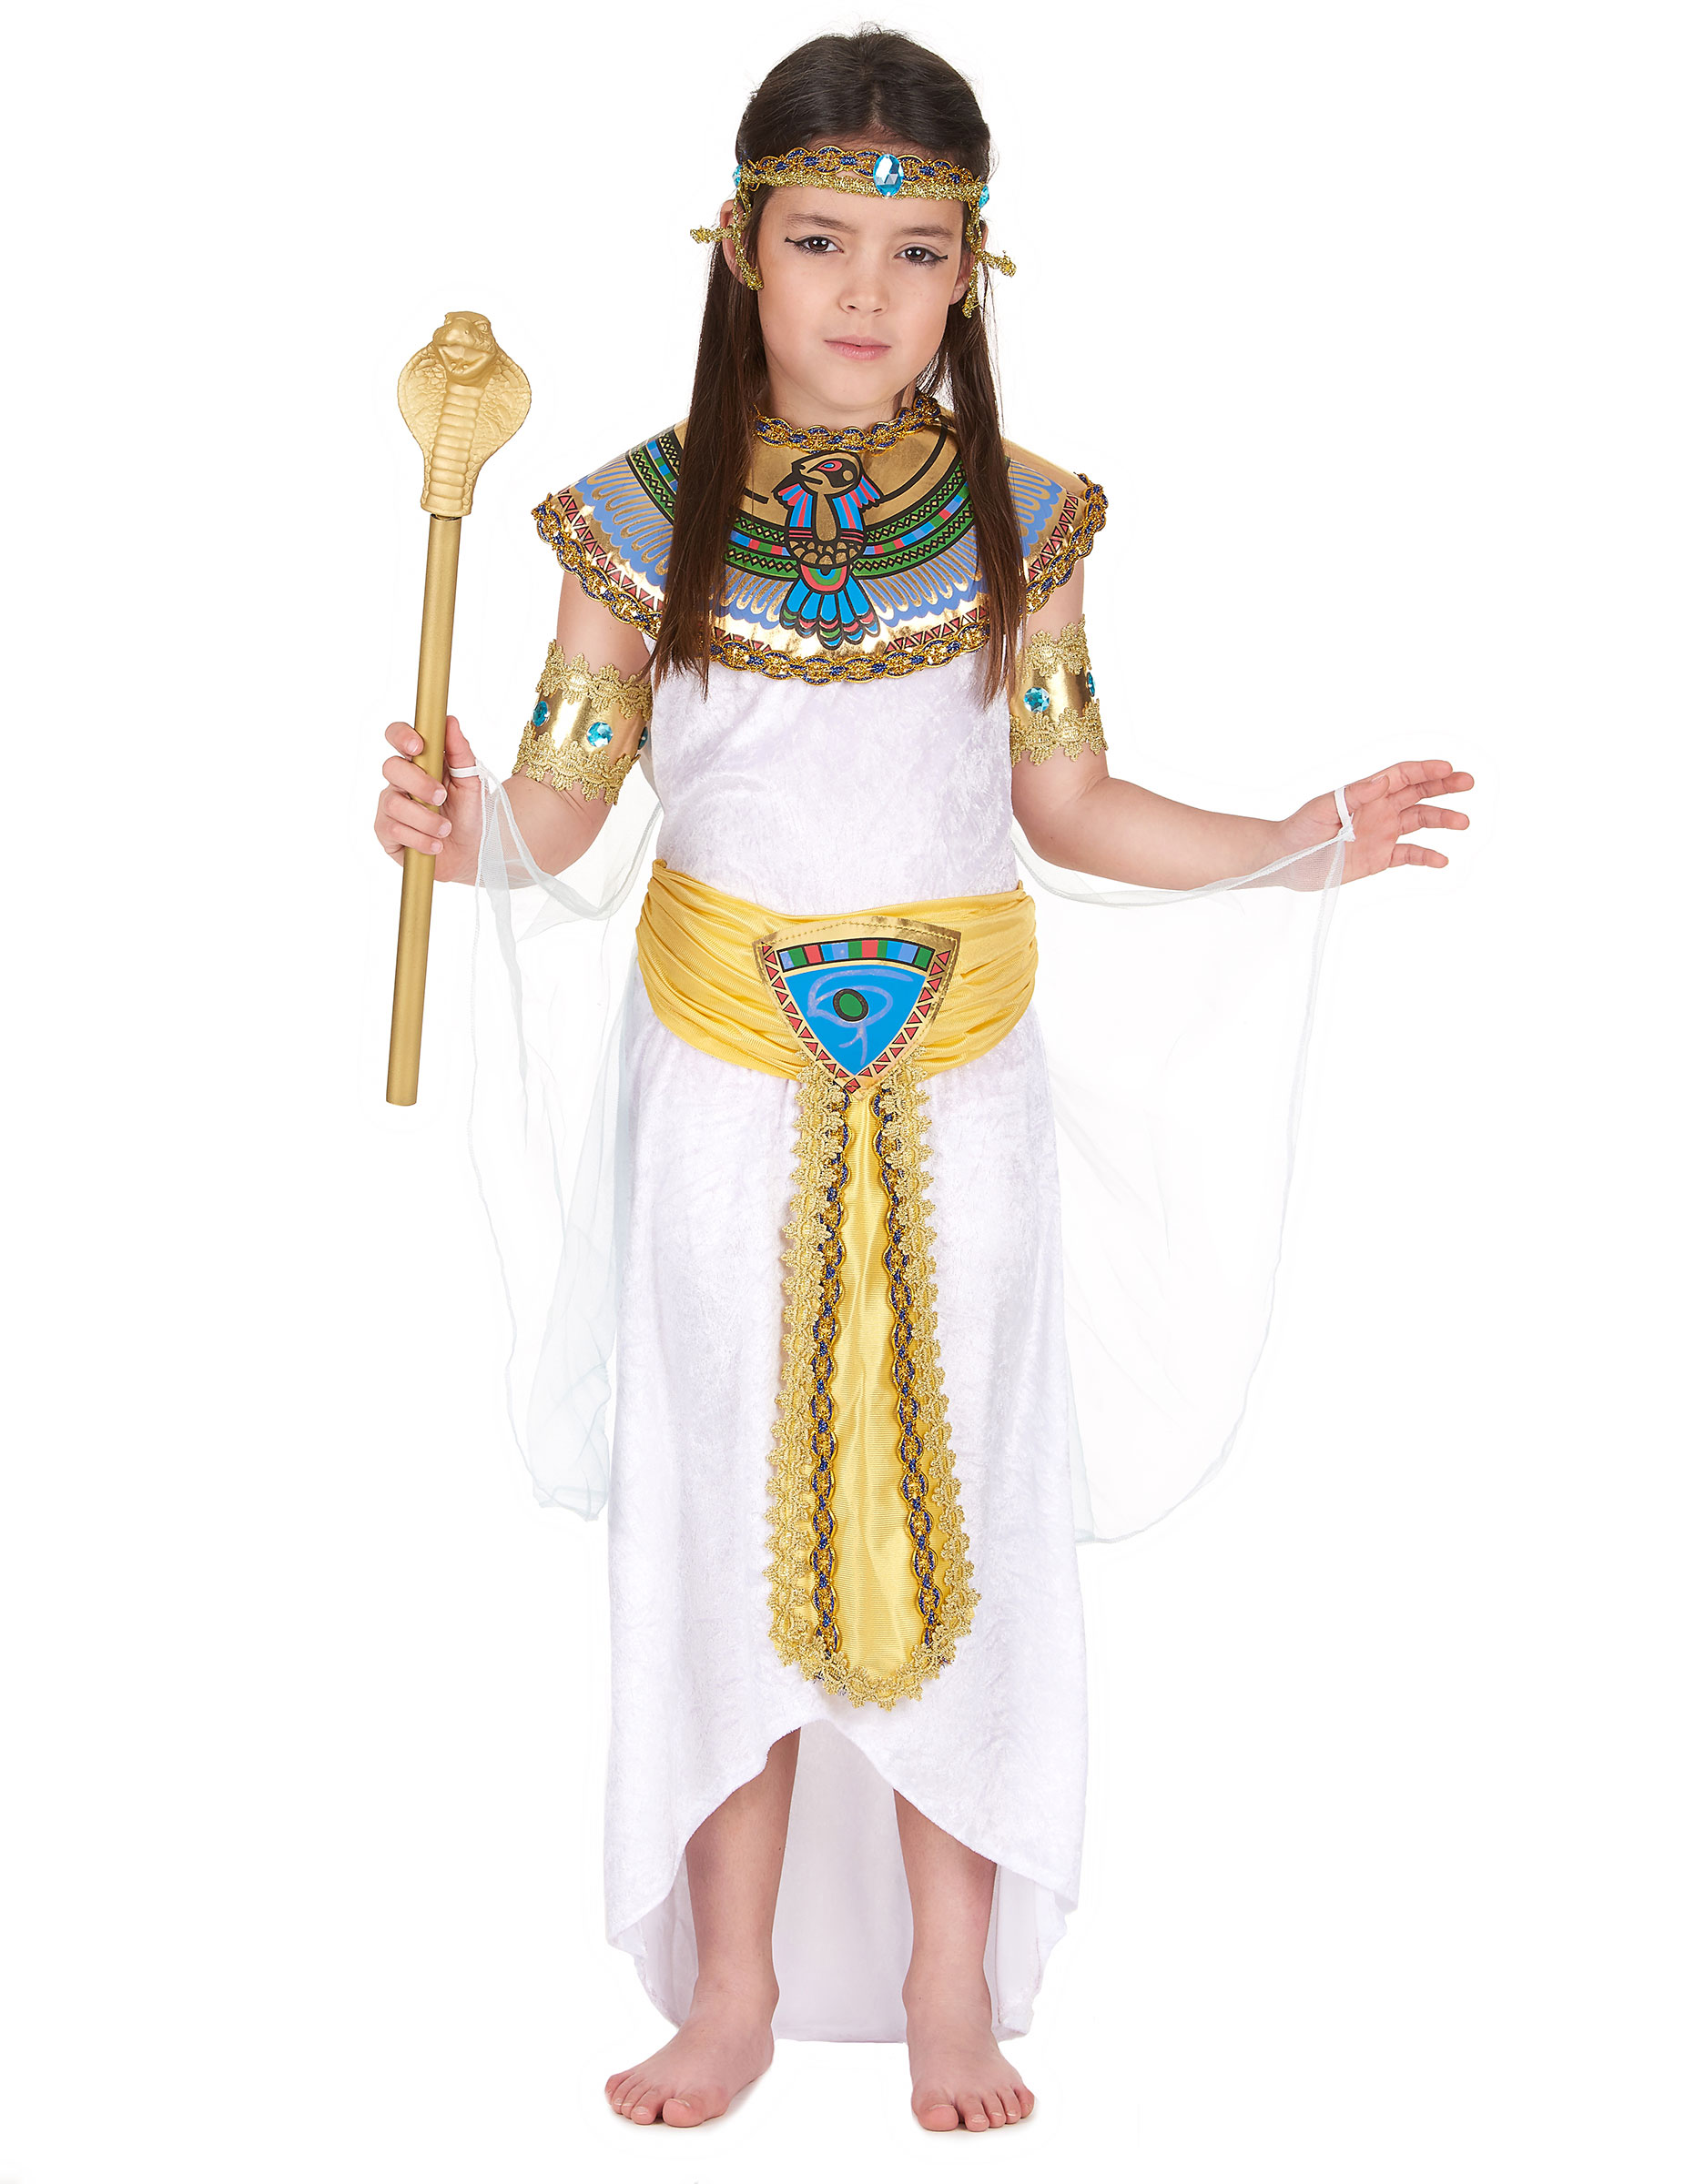 Rencontre fille egyptienne egypte